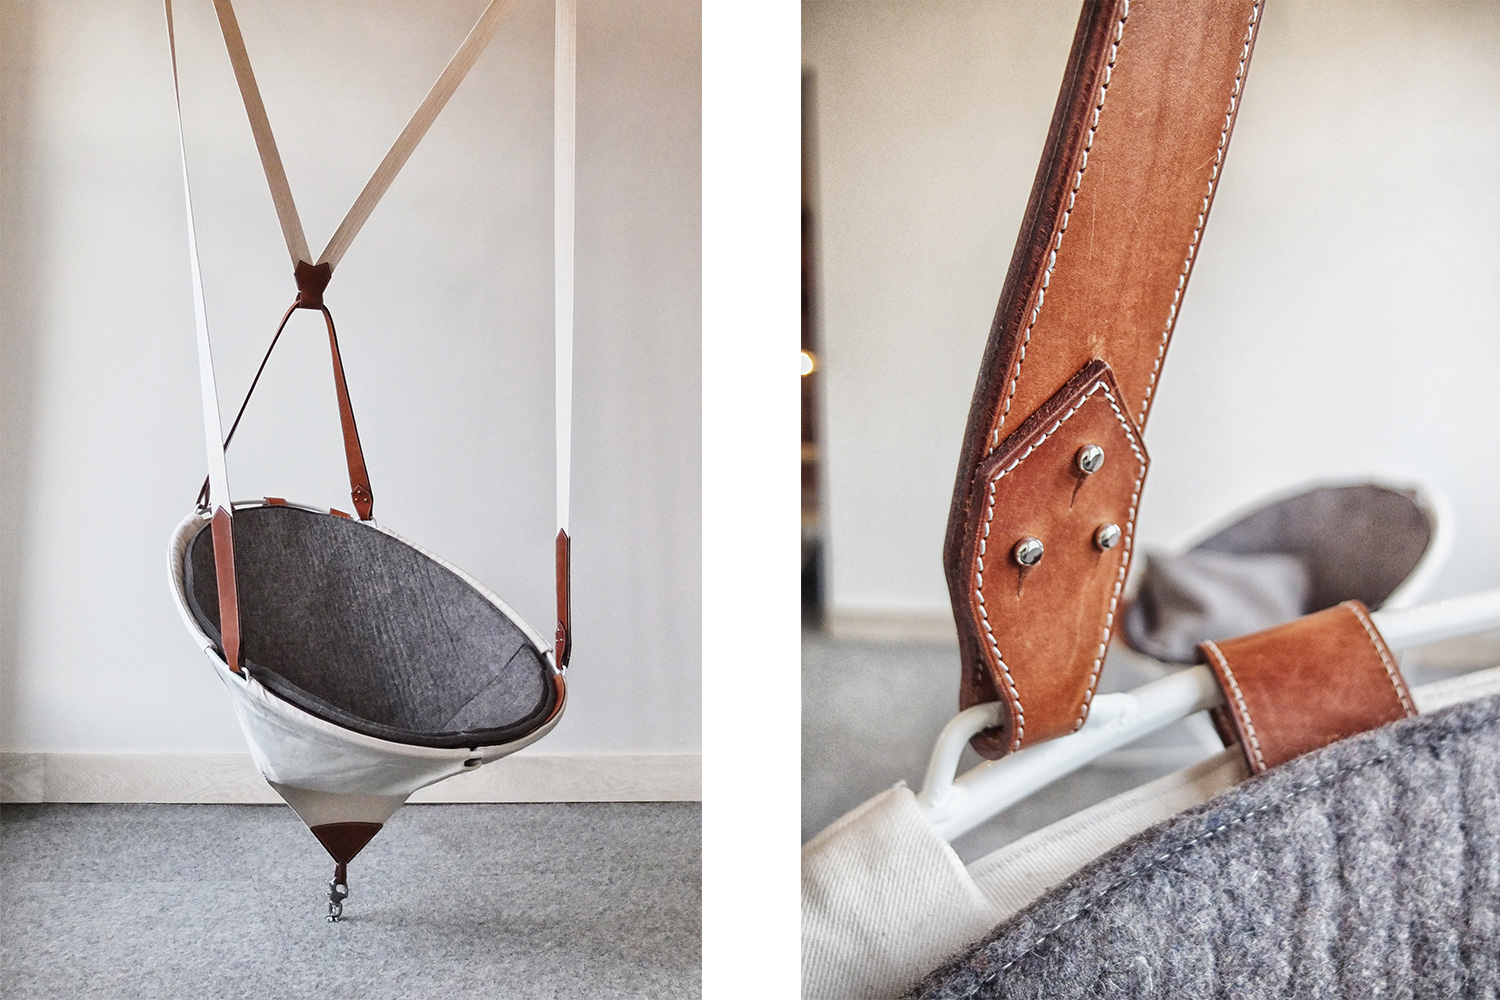 Swing chair made to measure. Felt cover with white canvas and brown leather reinforcement. Hanging white metal structure with white fabric band and bent fasteners